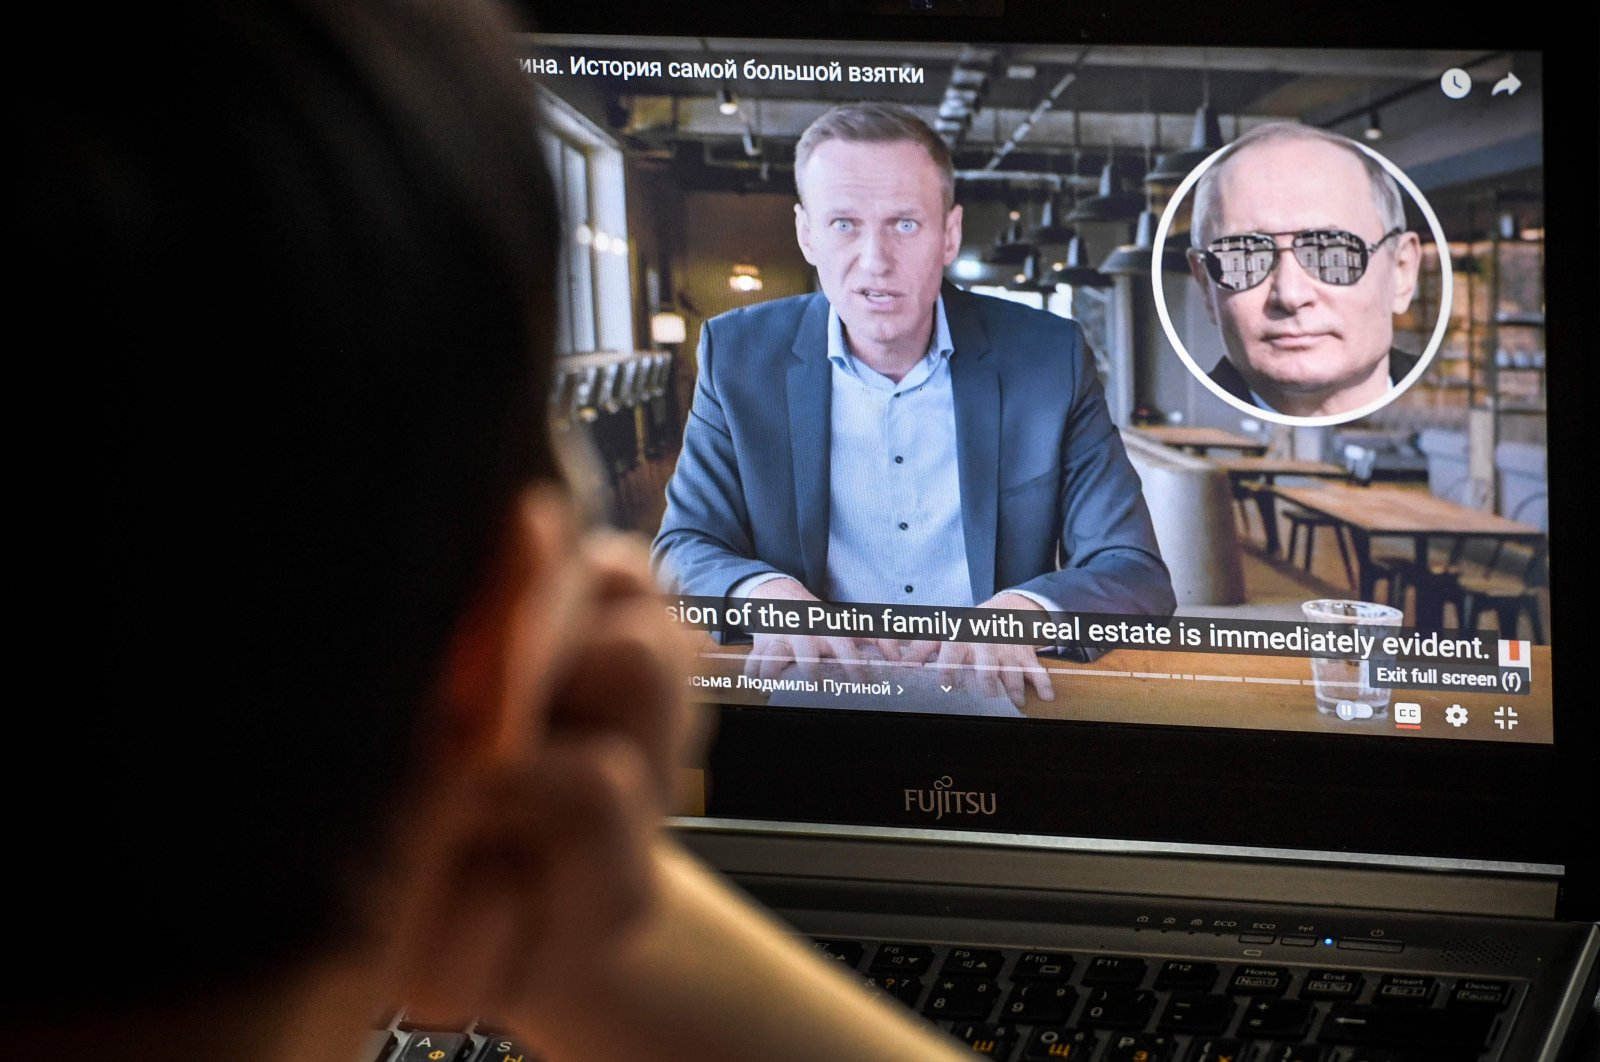 A woman watches an investigative film by Russian opposition leader Alexei Navalny in Moscow, Jan. 21, 2021. (AFP Photo)